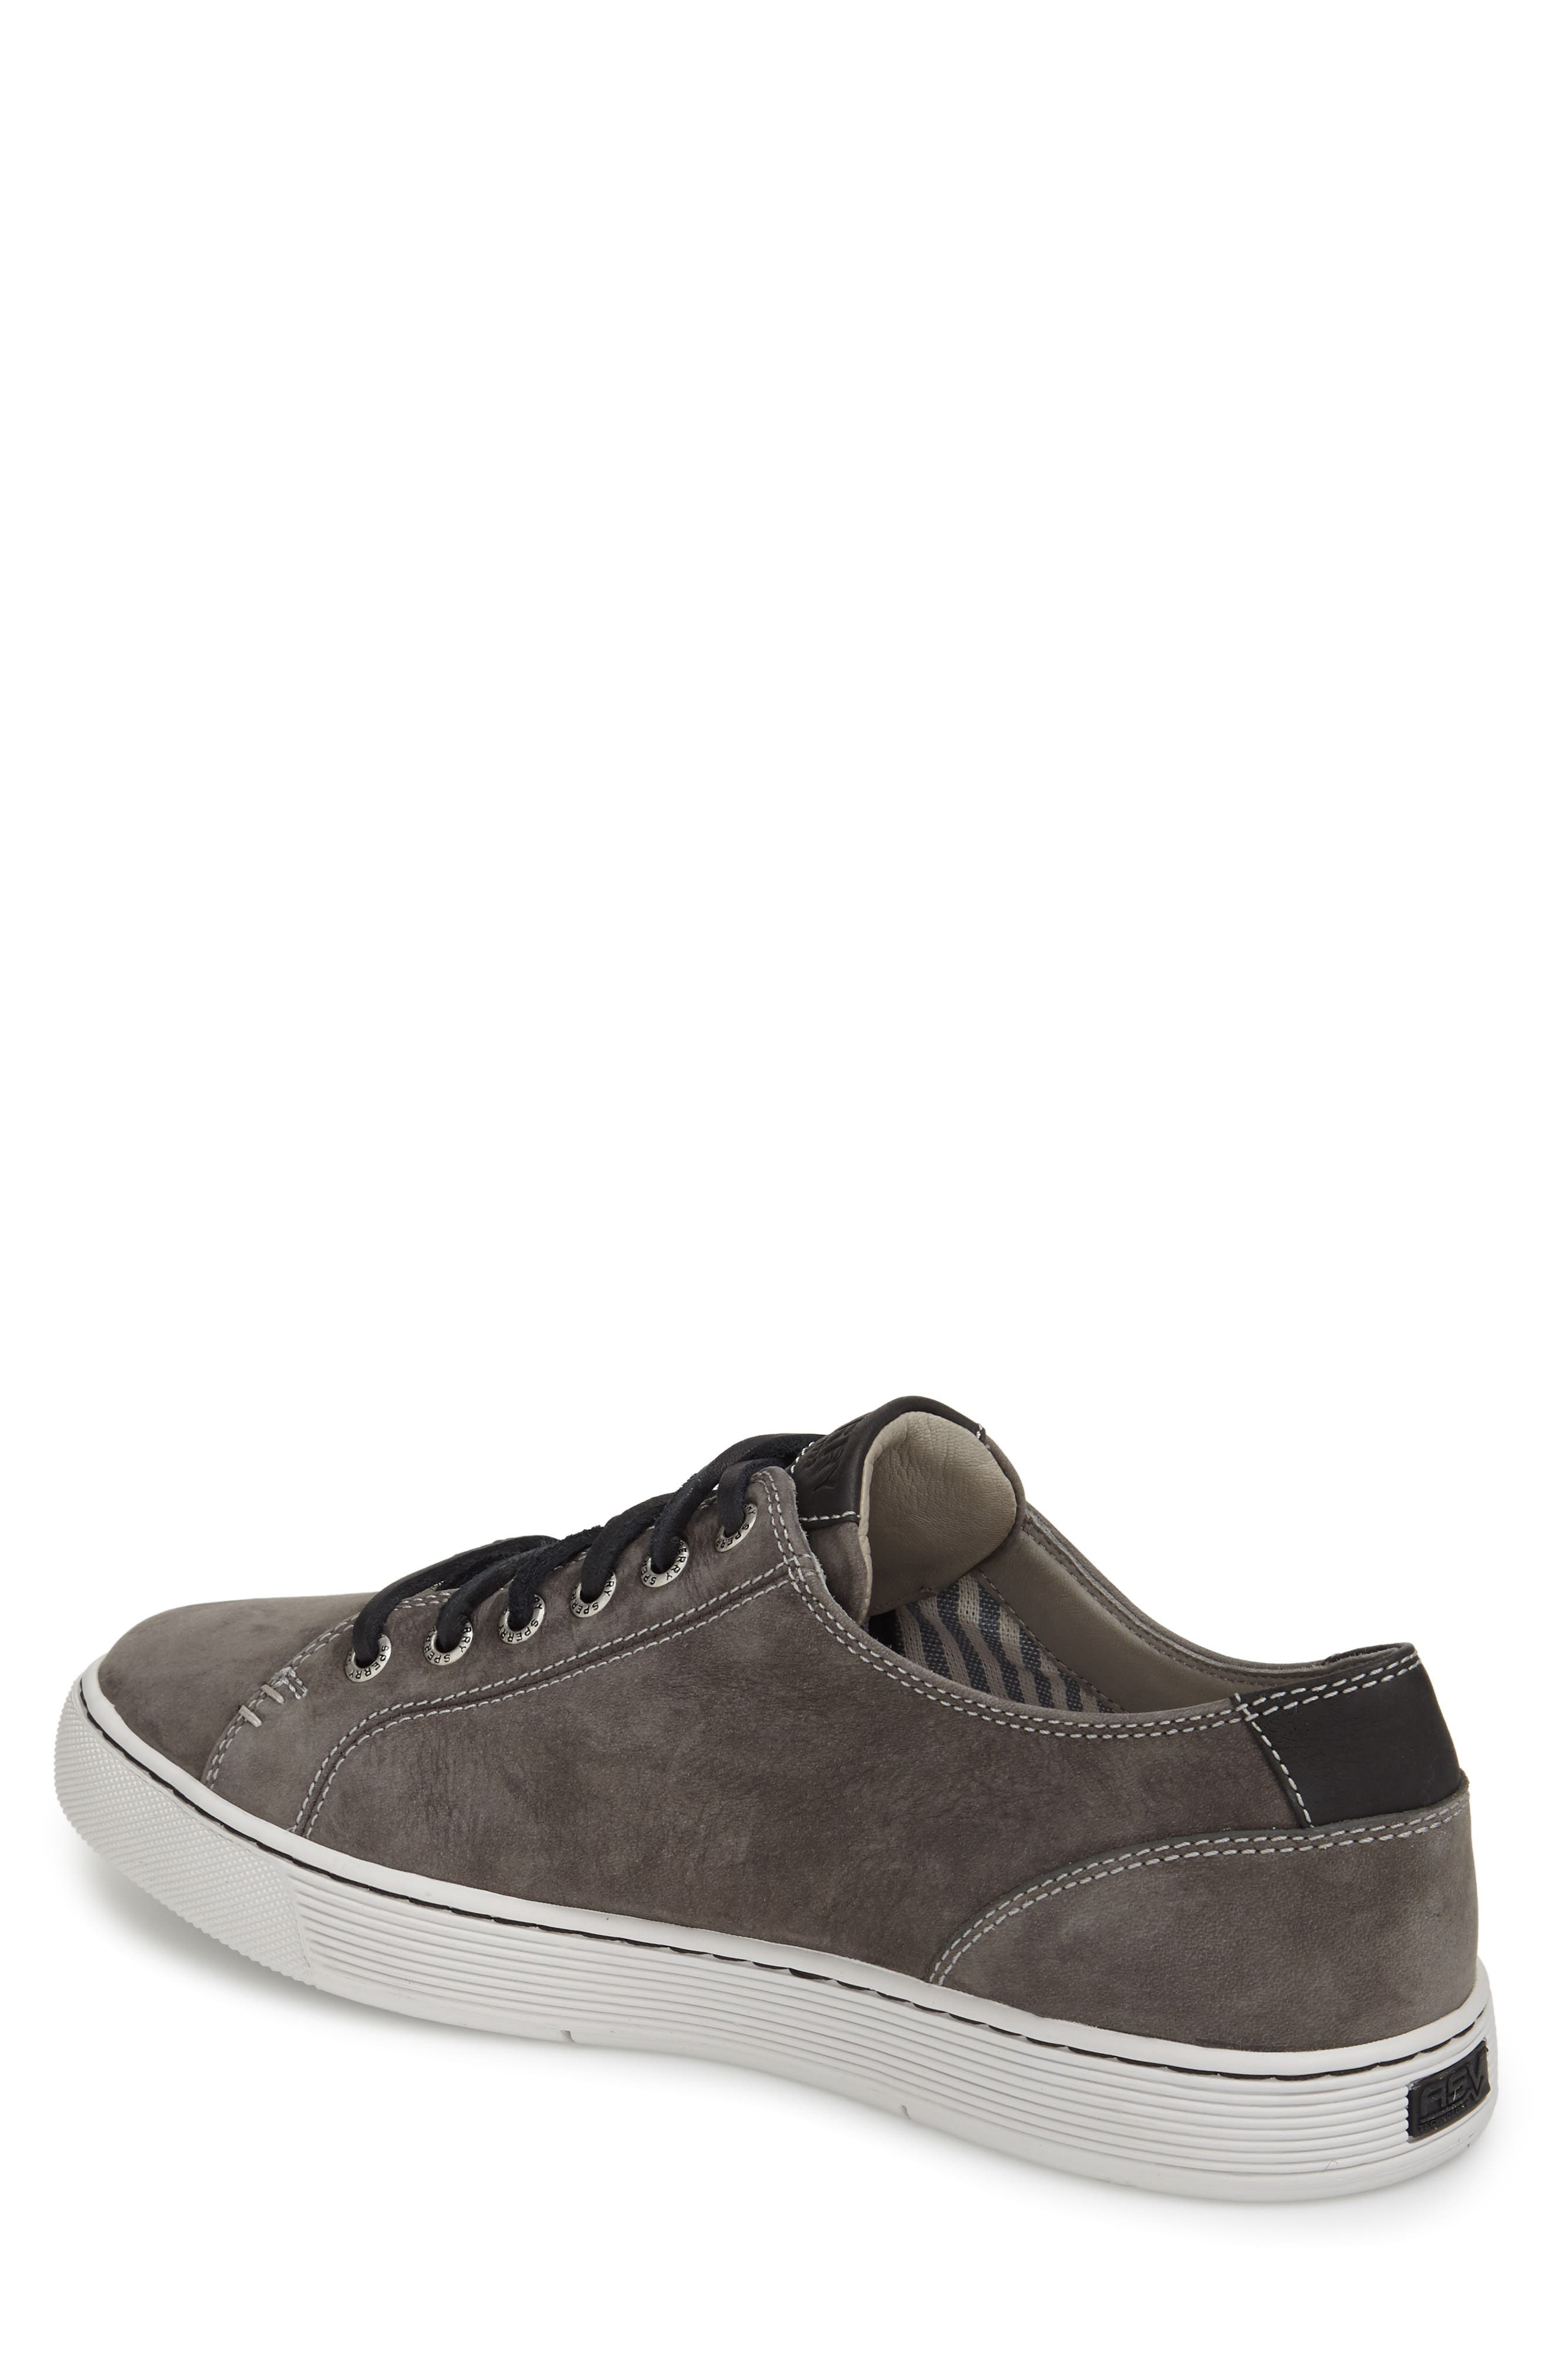 SPERRY, Gold Cup LLT Sneaker, Alternate thumbnail 4, color, GREY SUEDE